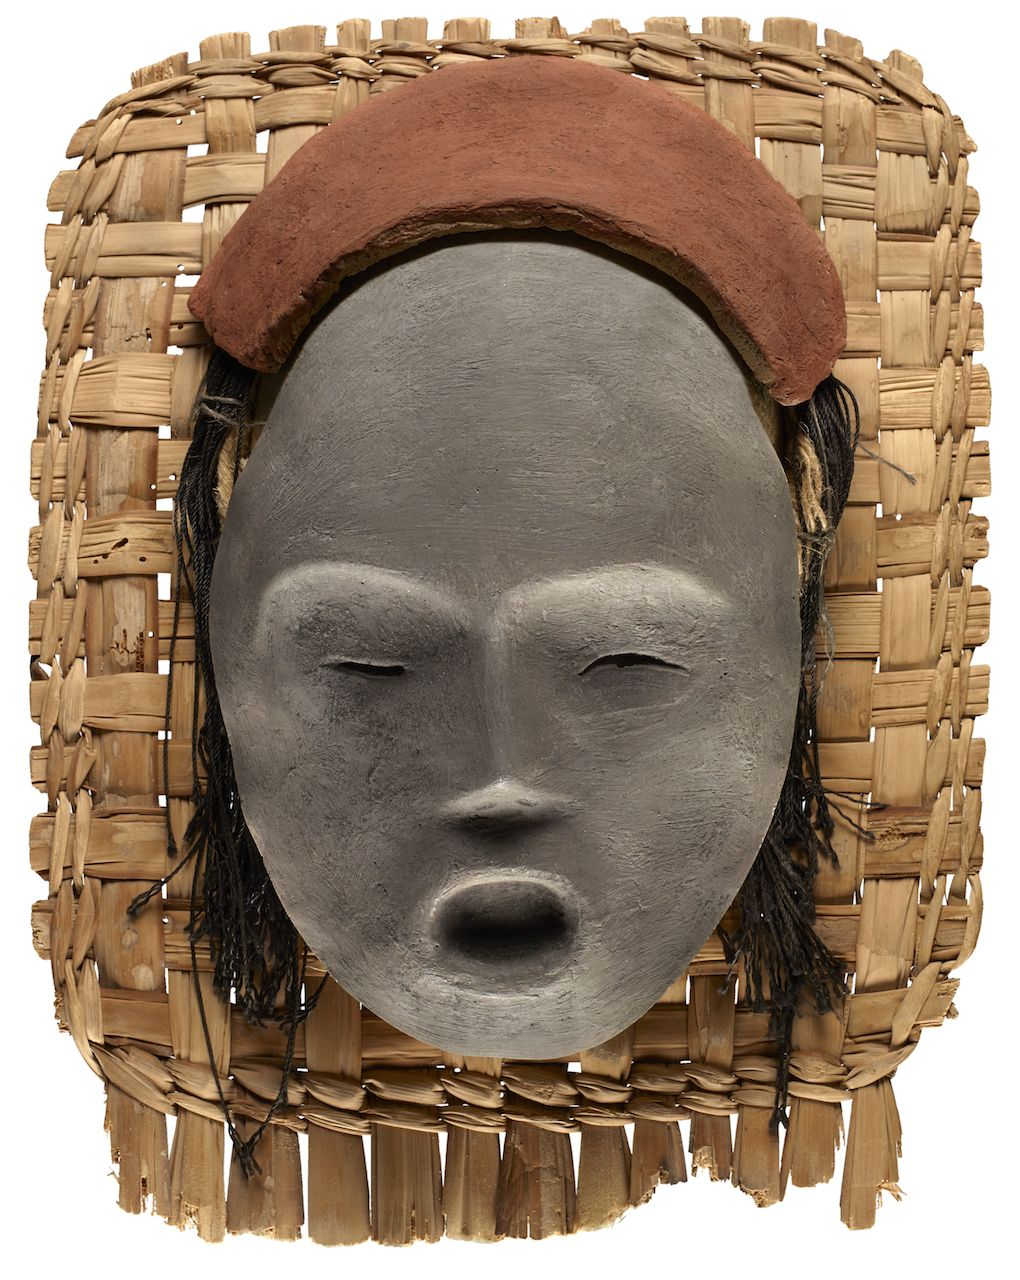 Replica of a Chinchorro mummy mask. The Chinchorro people, who ...